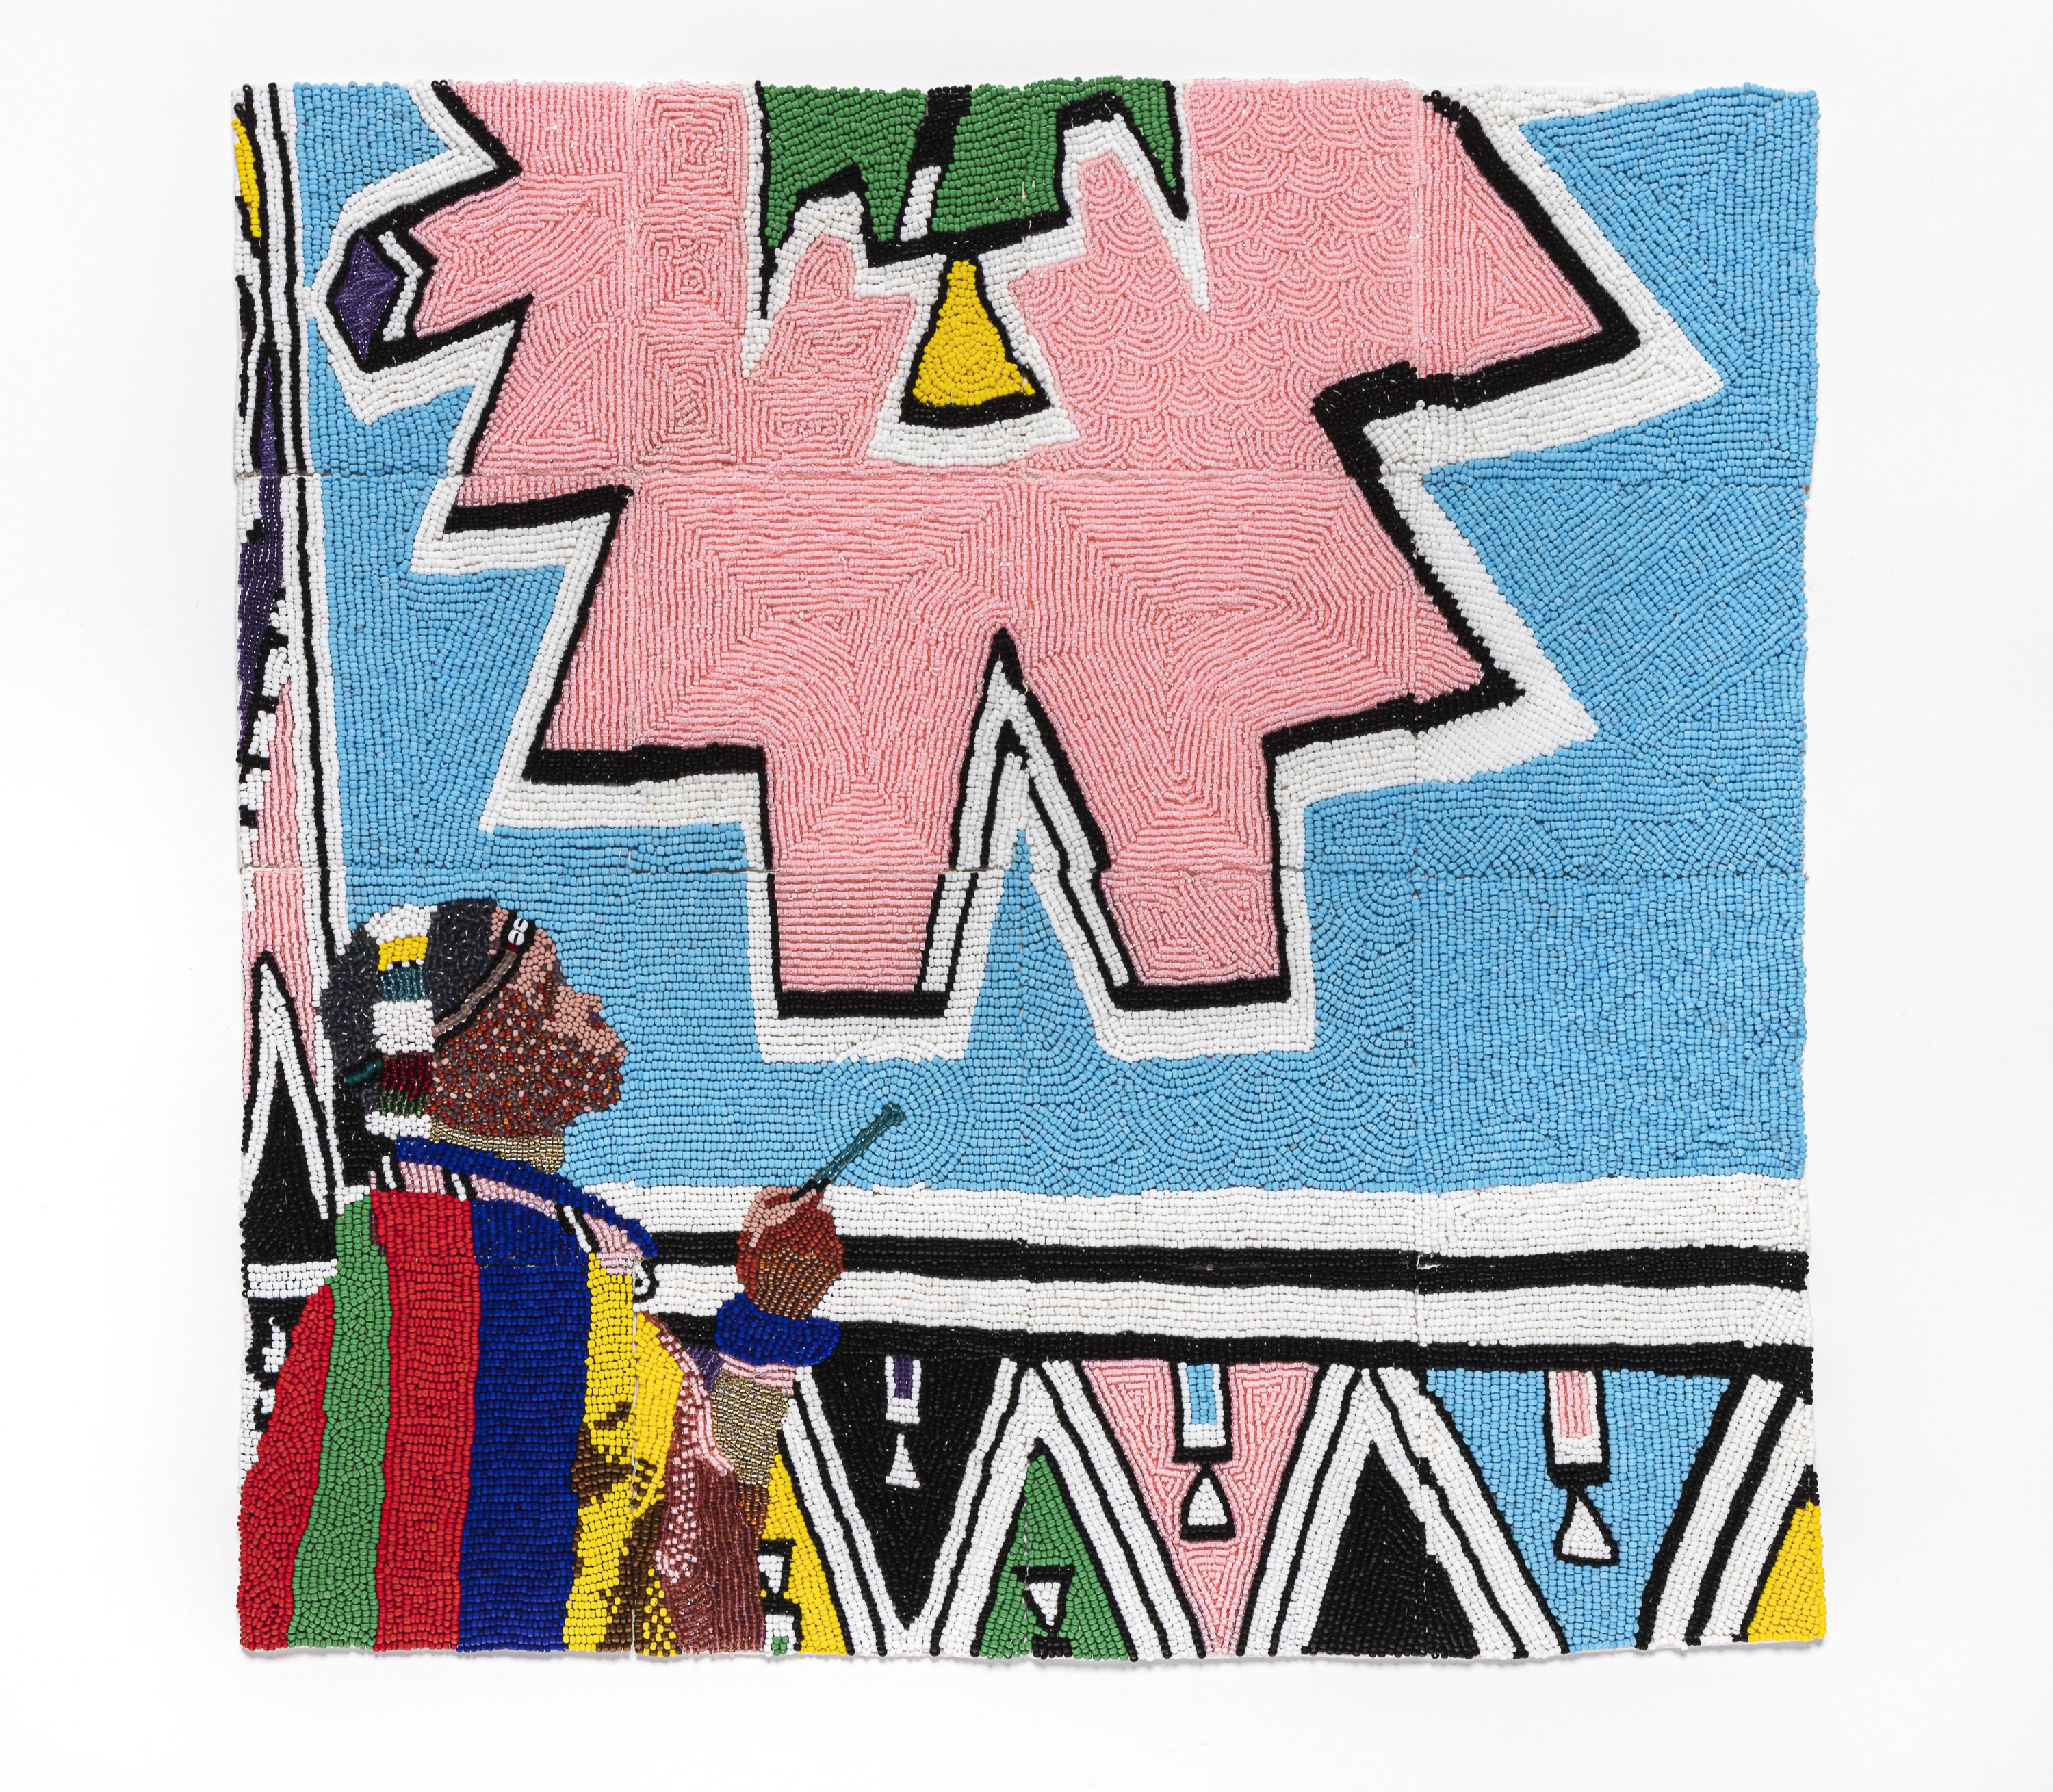 Tiny, colorful beads arranged in patterns to depict Esther Mahlangu painting a large artwork of geometric shapes in light pink and blue, black, white, yellow, and green. She is a dark-skinned adult woman wearing colorfully patterned robes.